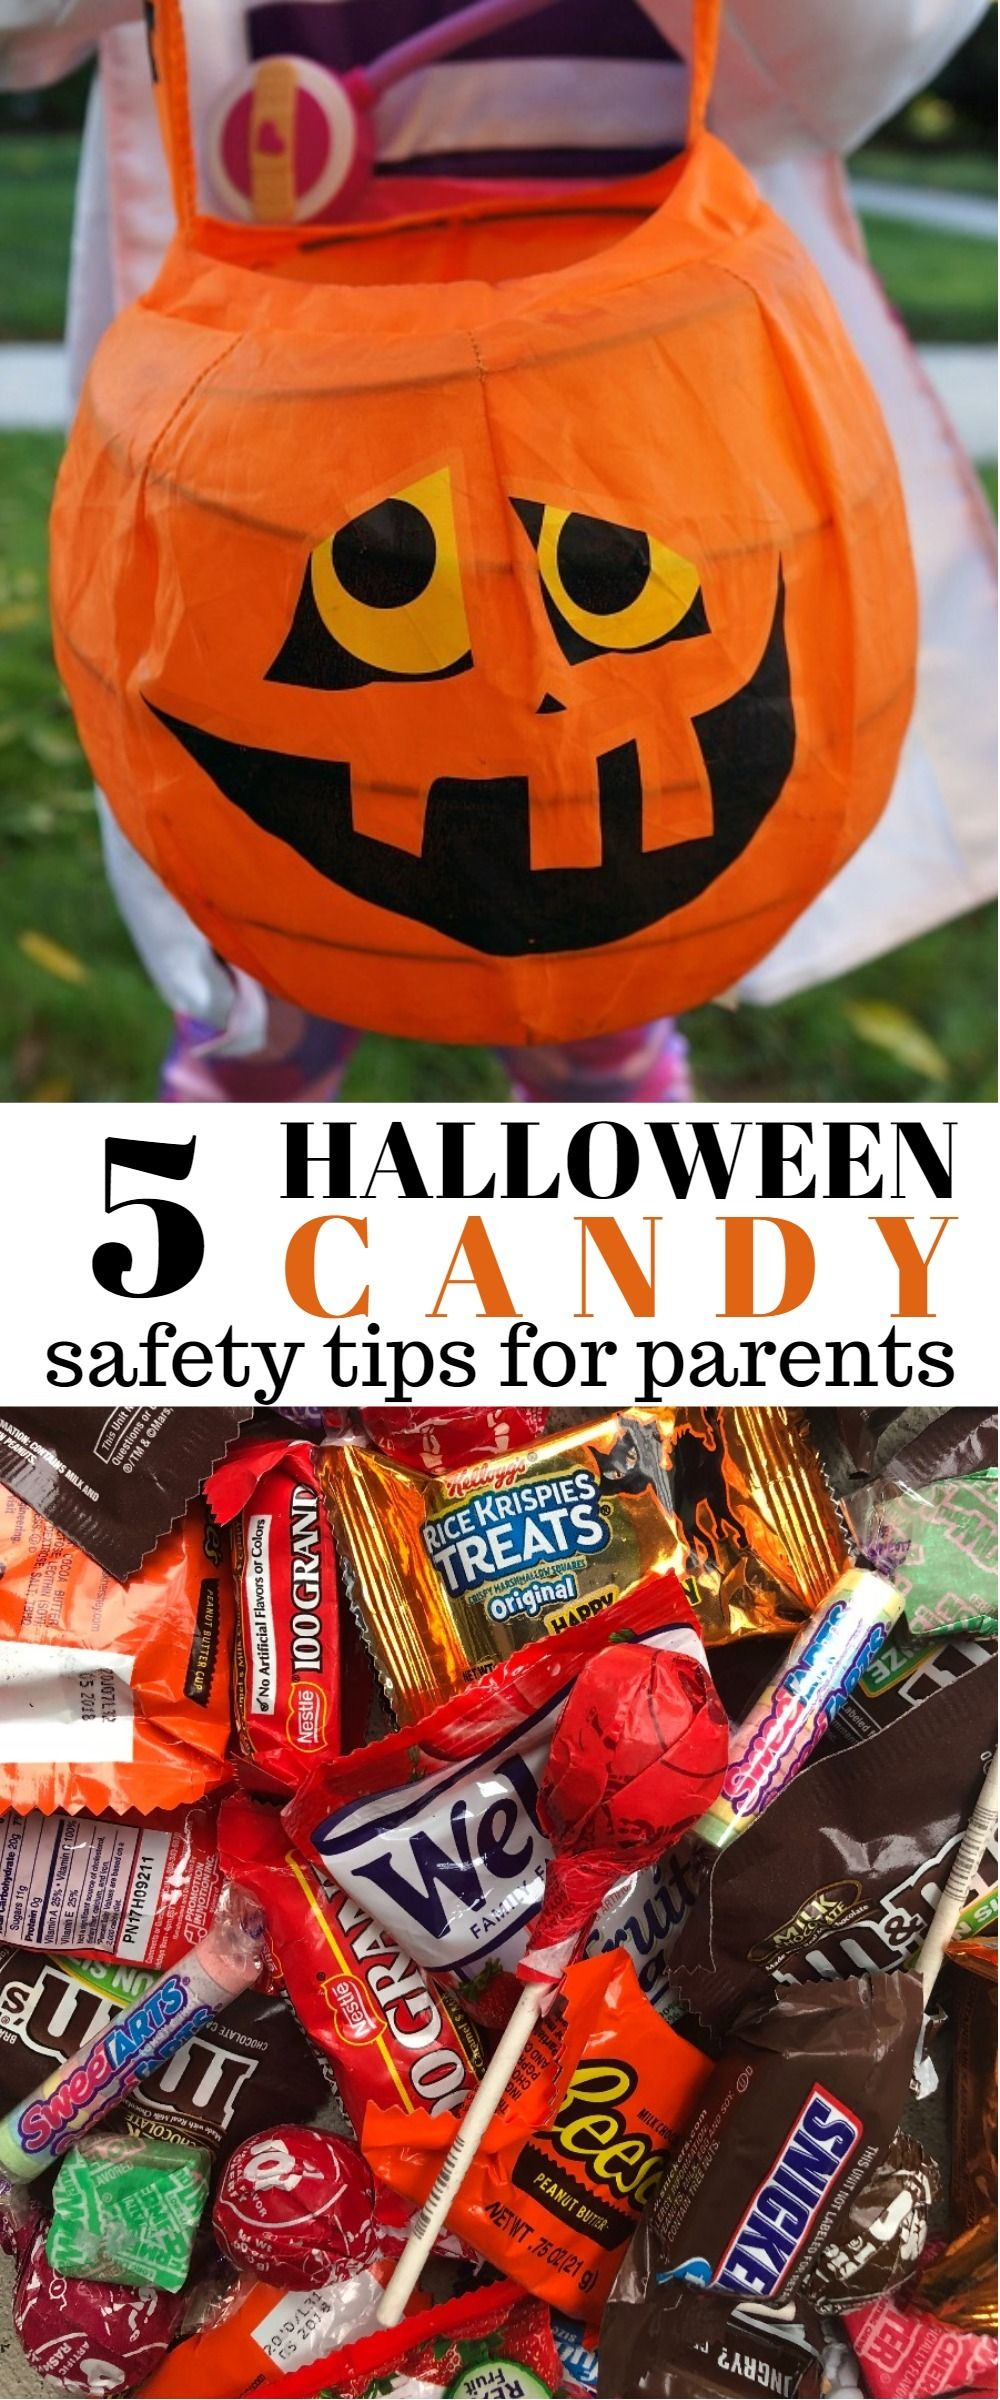 5 Halloween Candy Safety Tips For Parents On Trick or